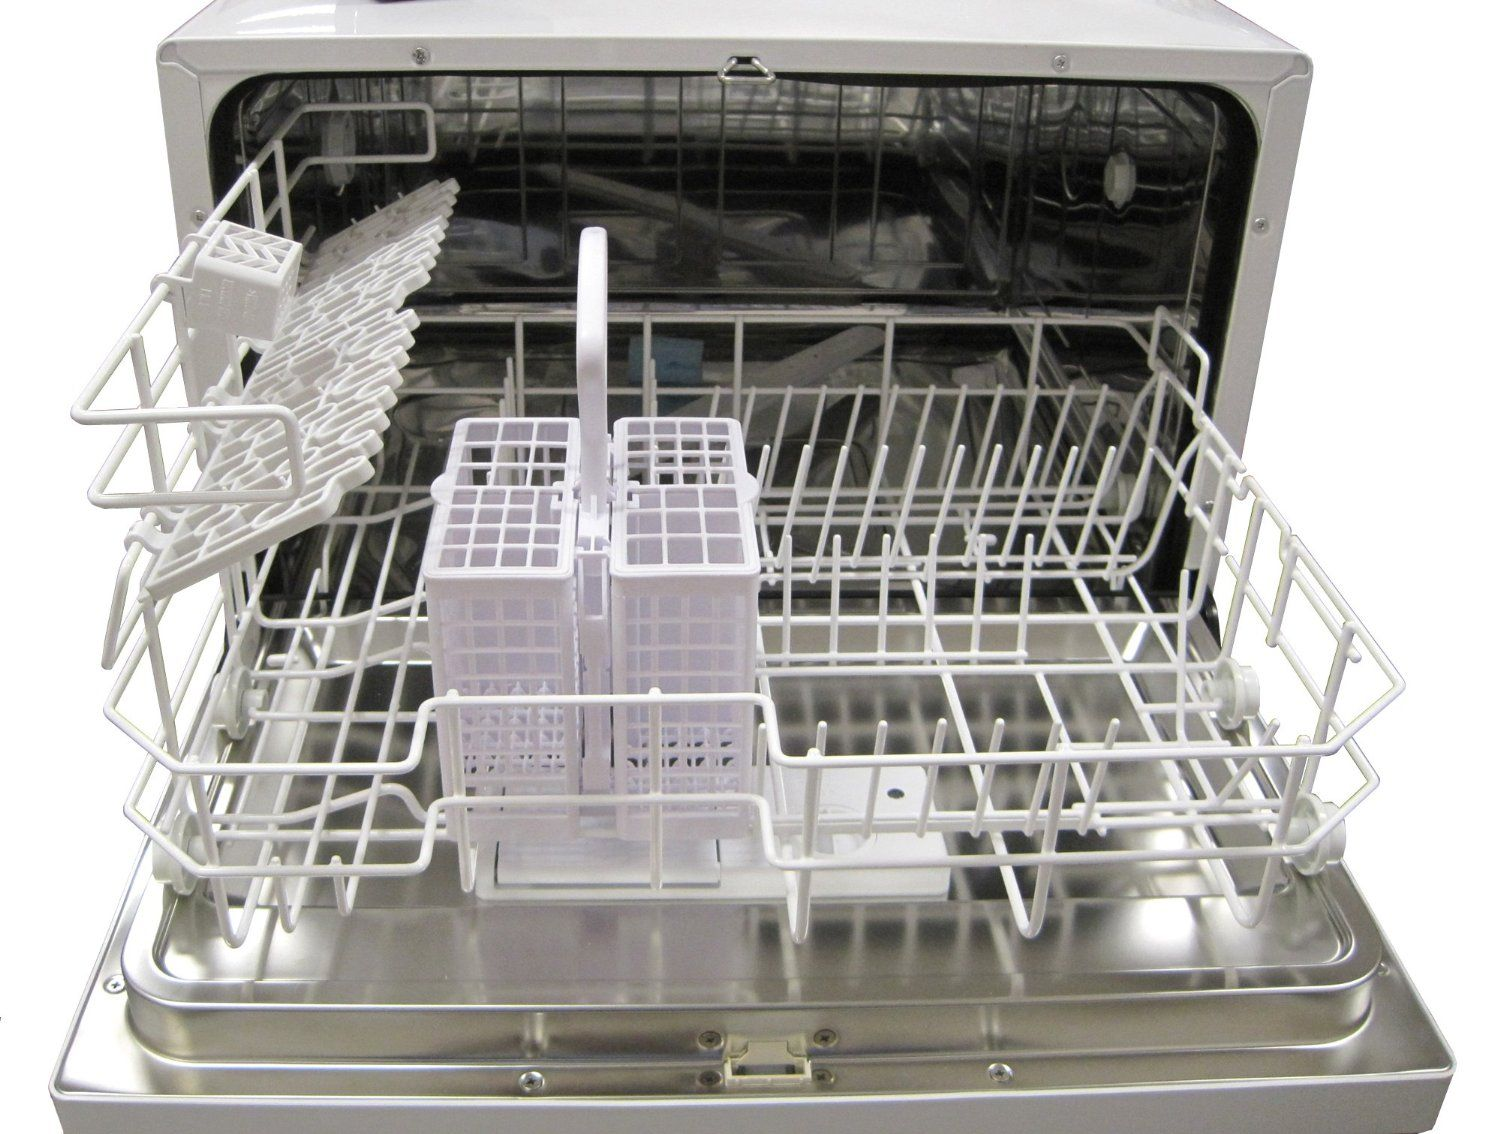 Small Dishwashers For Apartments - Best Appartment Image 2018